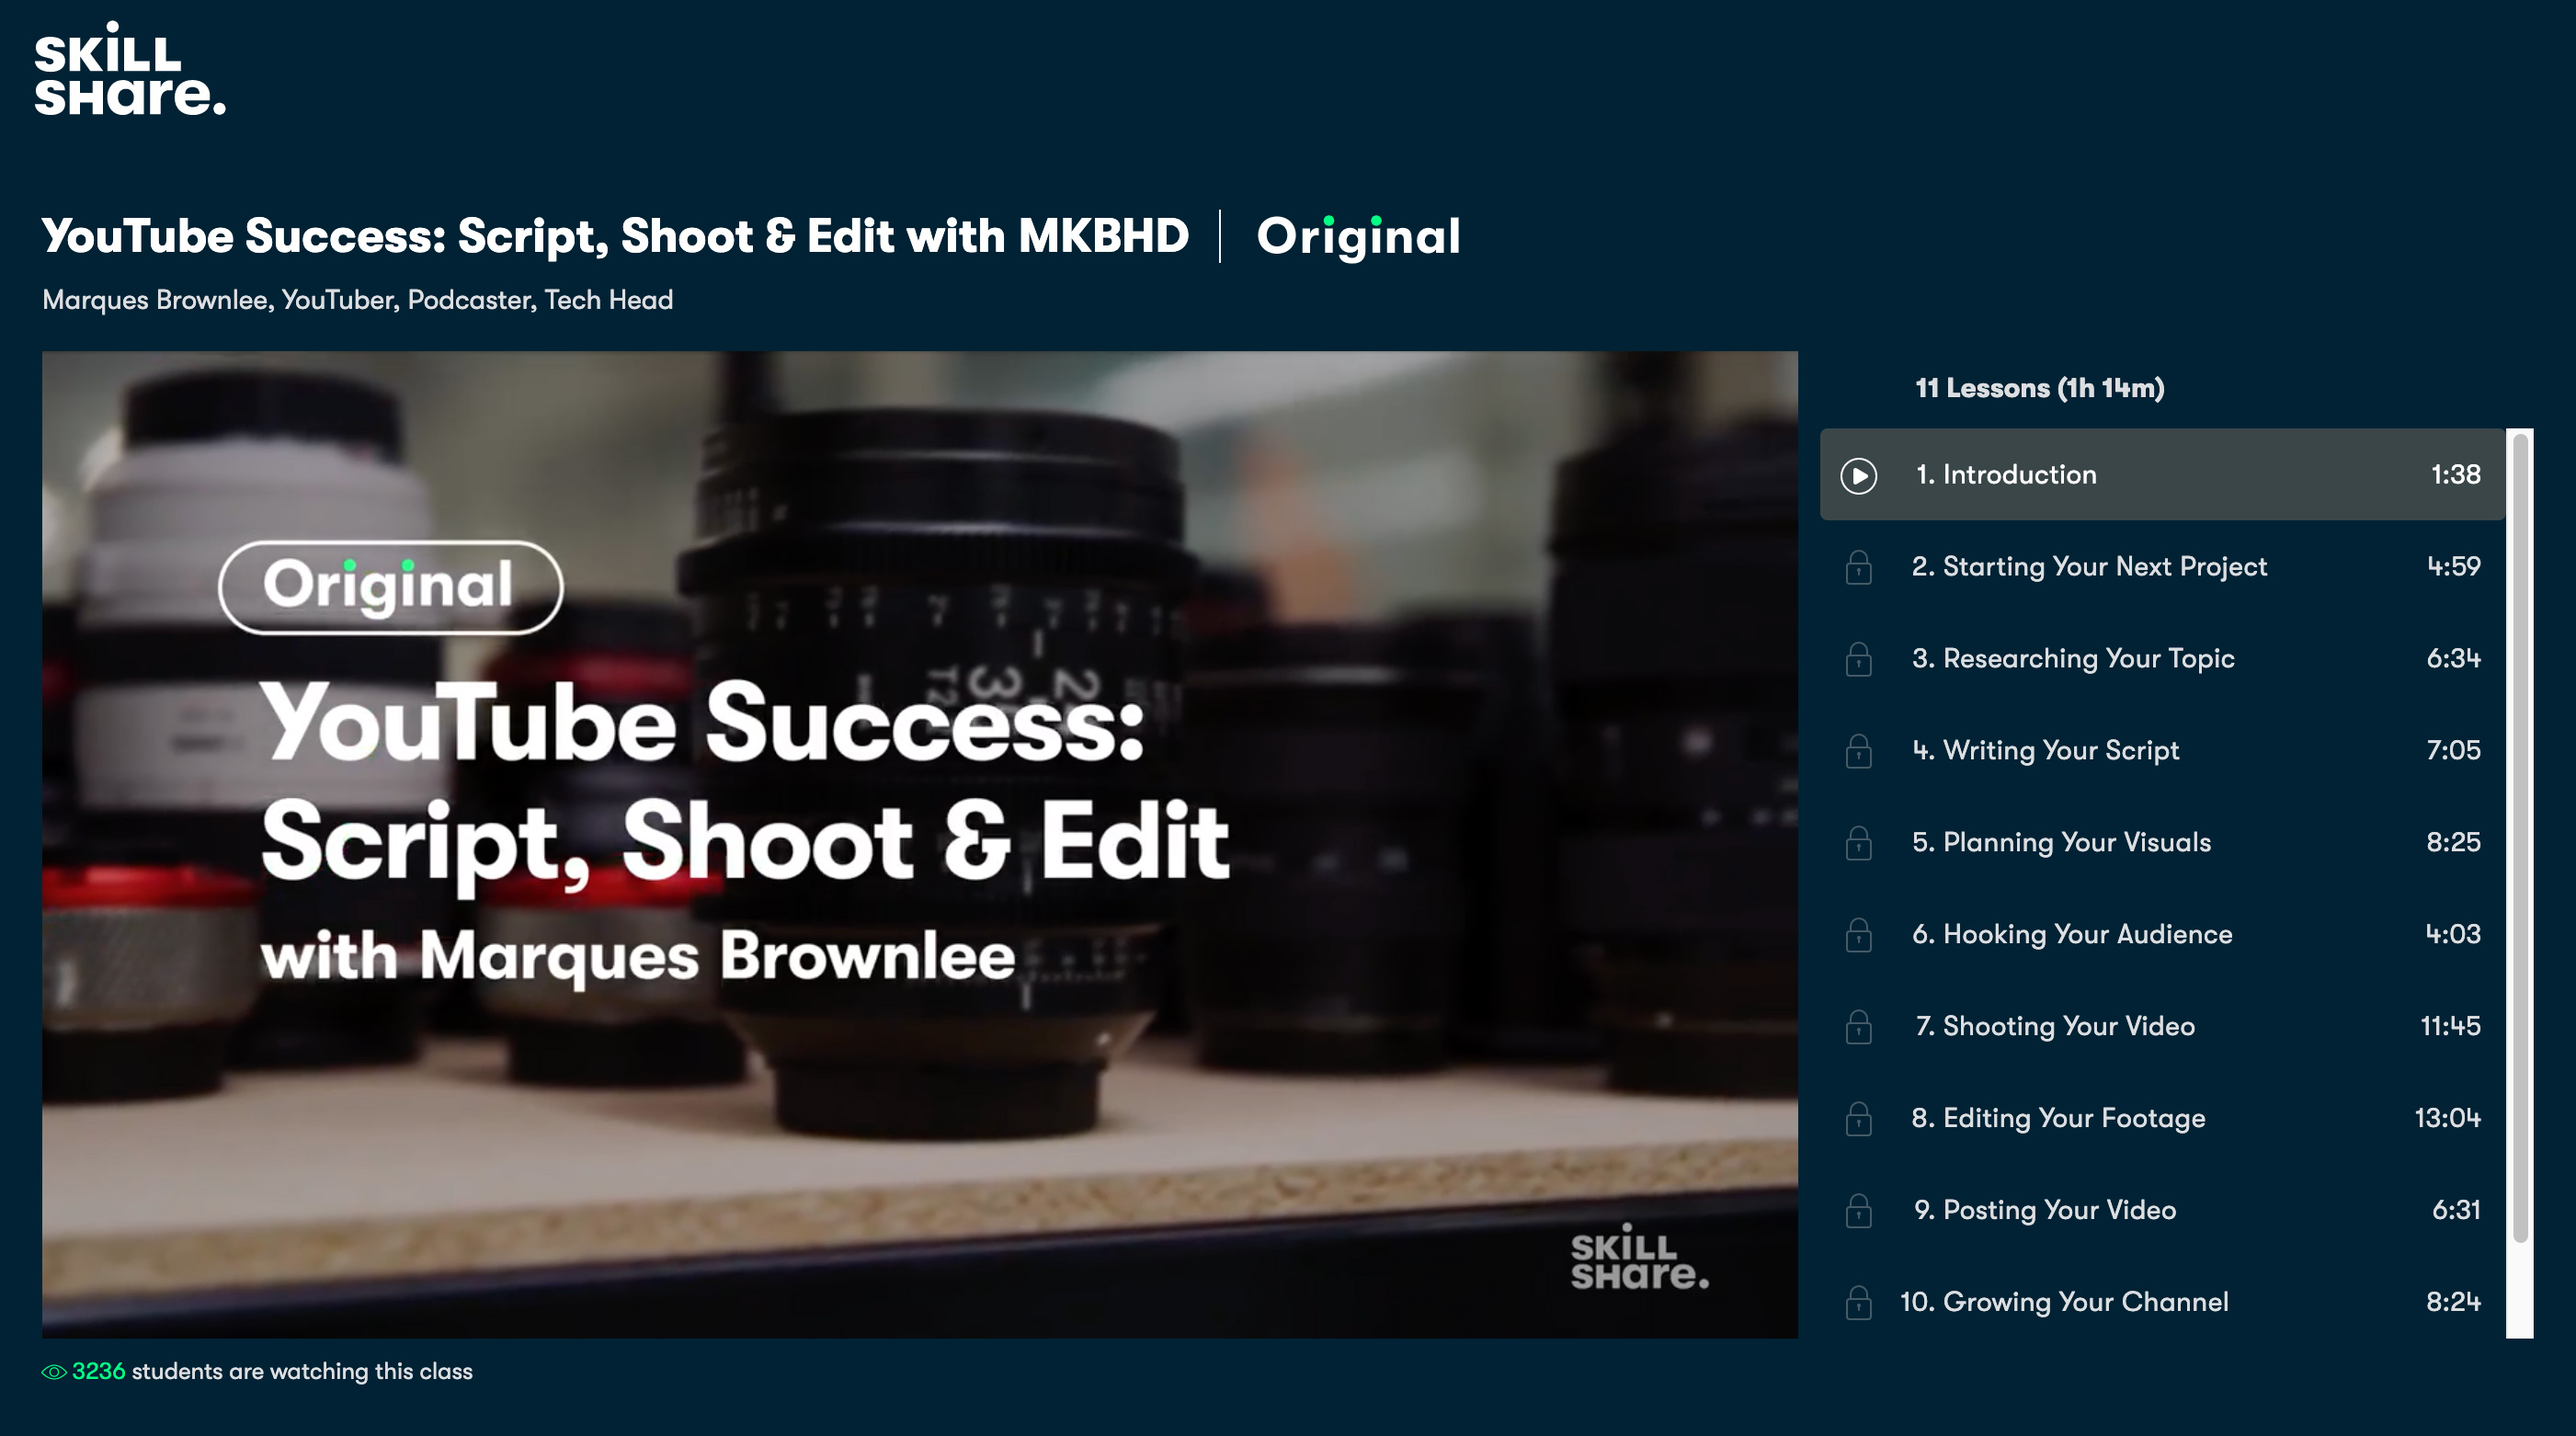 YouTube Success: Script, Shoot & Edit with MKBHD